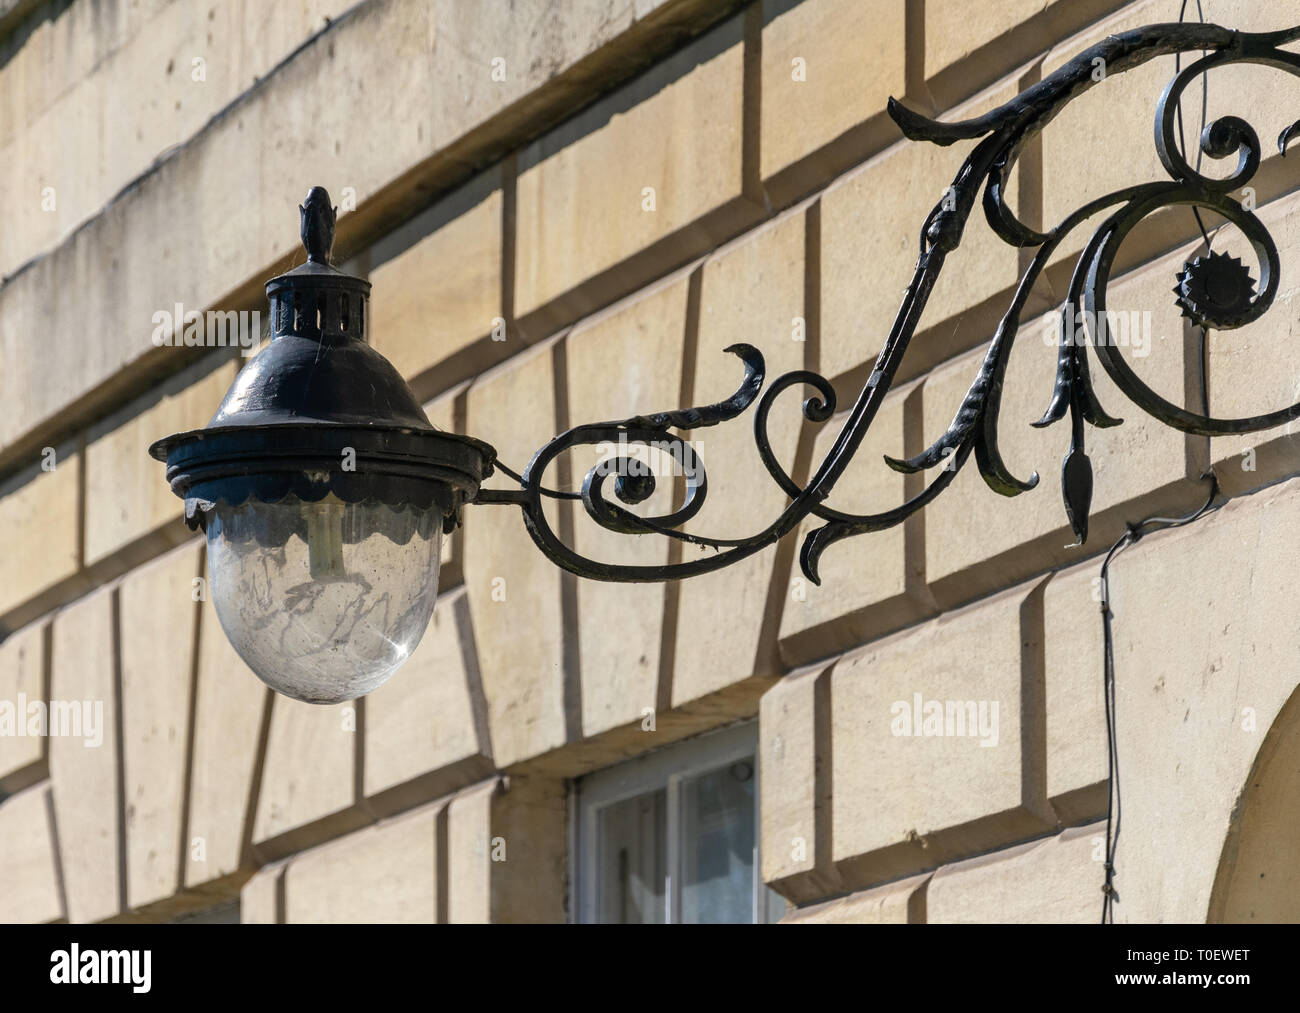 Ornate wrought iron lamp on lamp bracket on the facade of a house in Bath, England - Stock Image